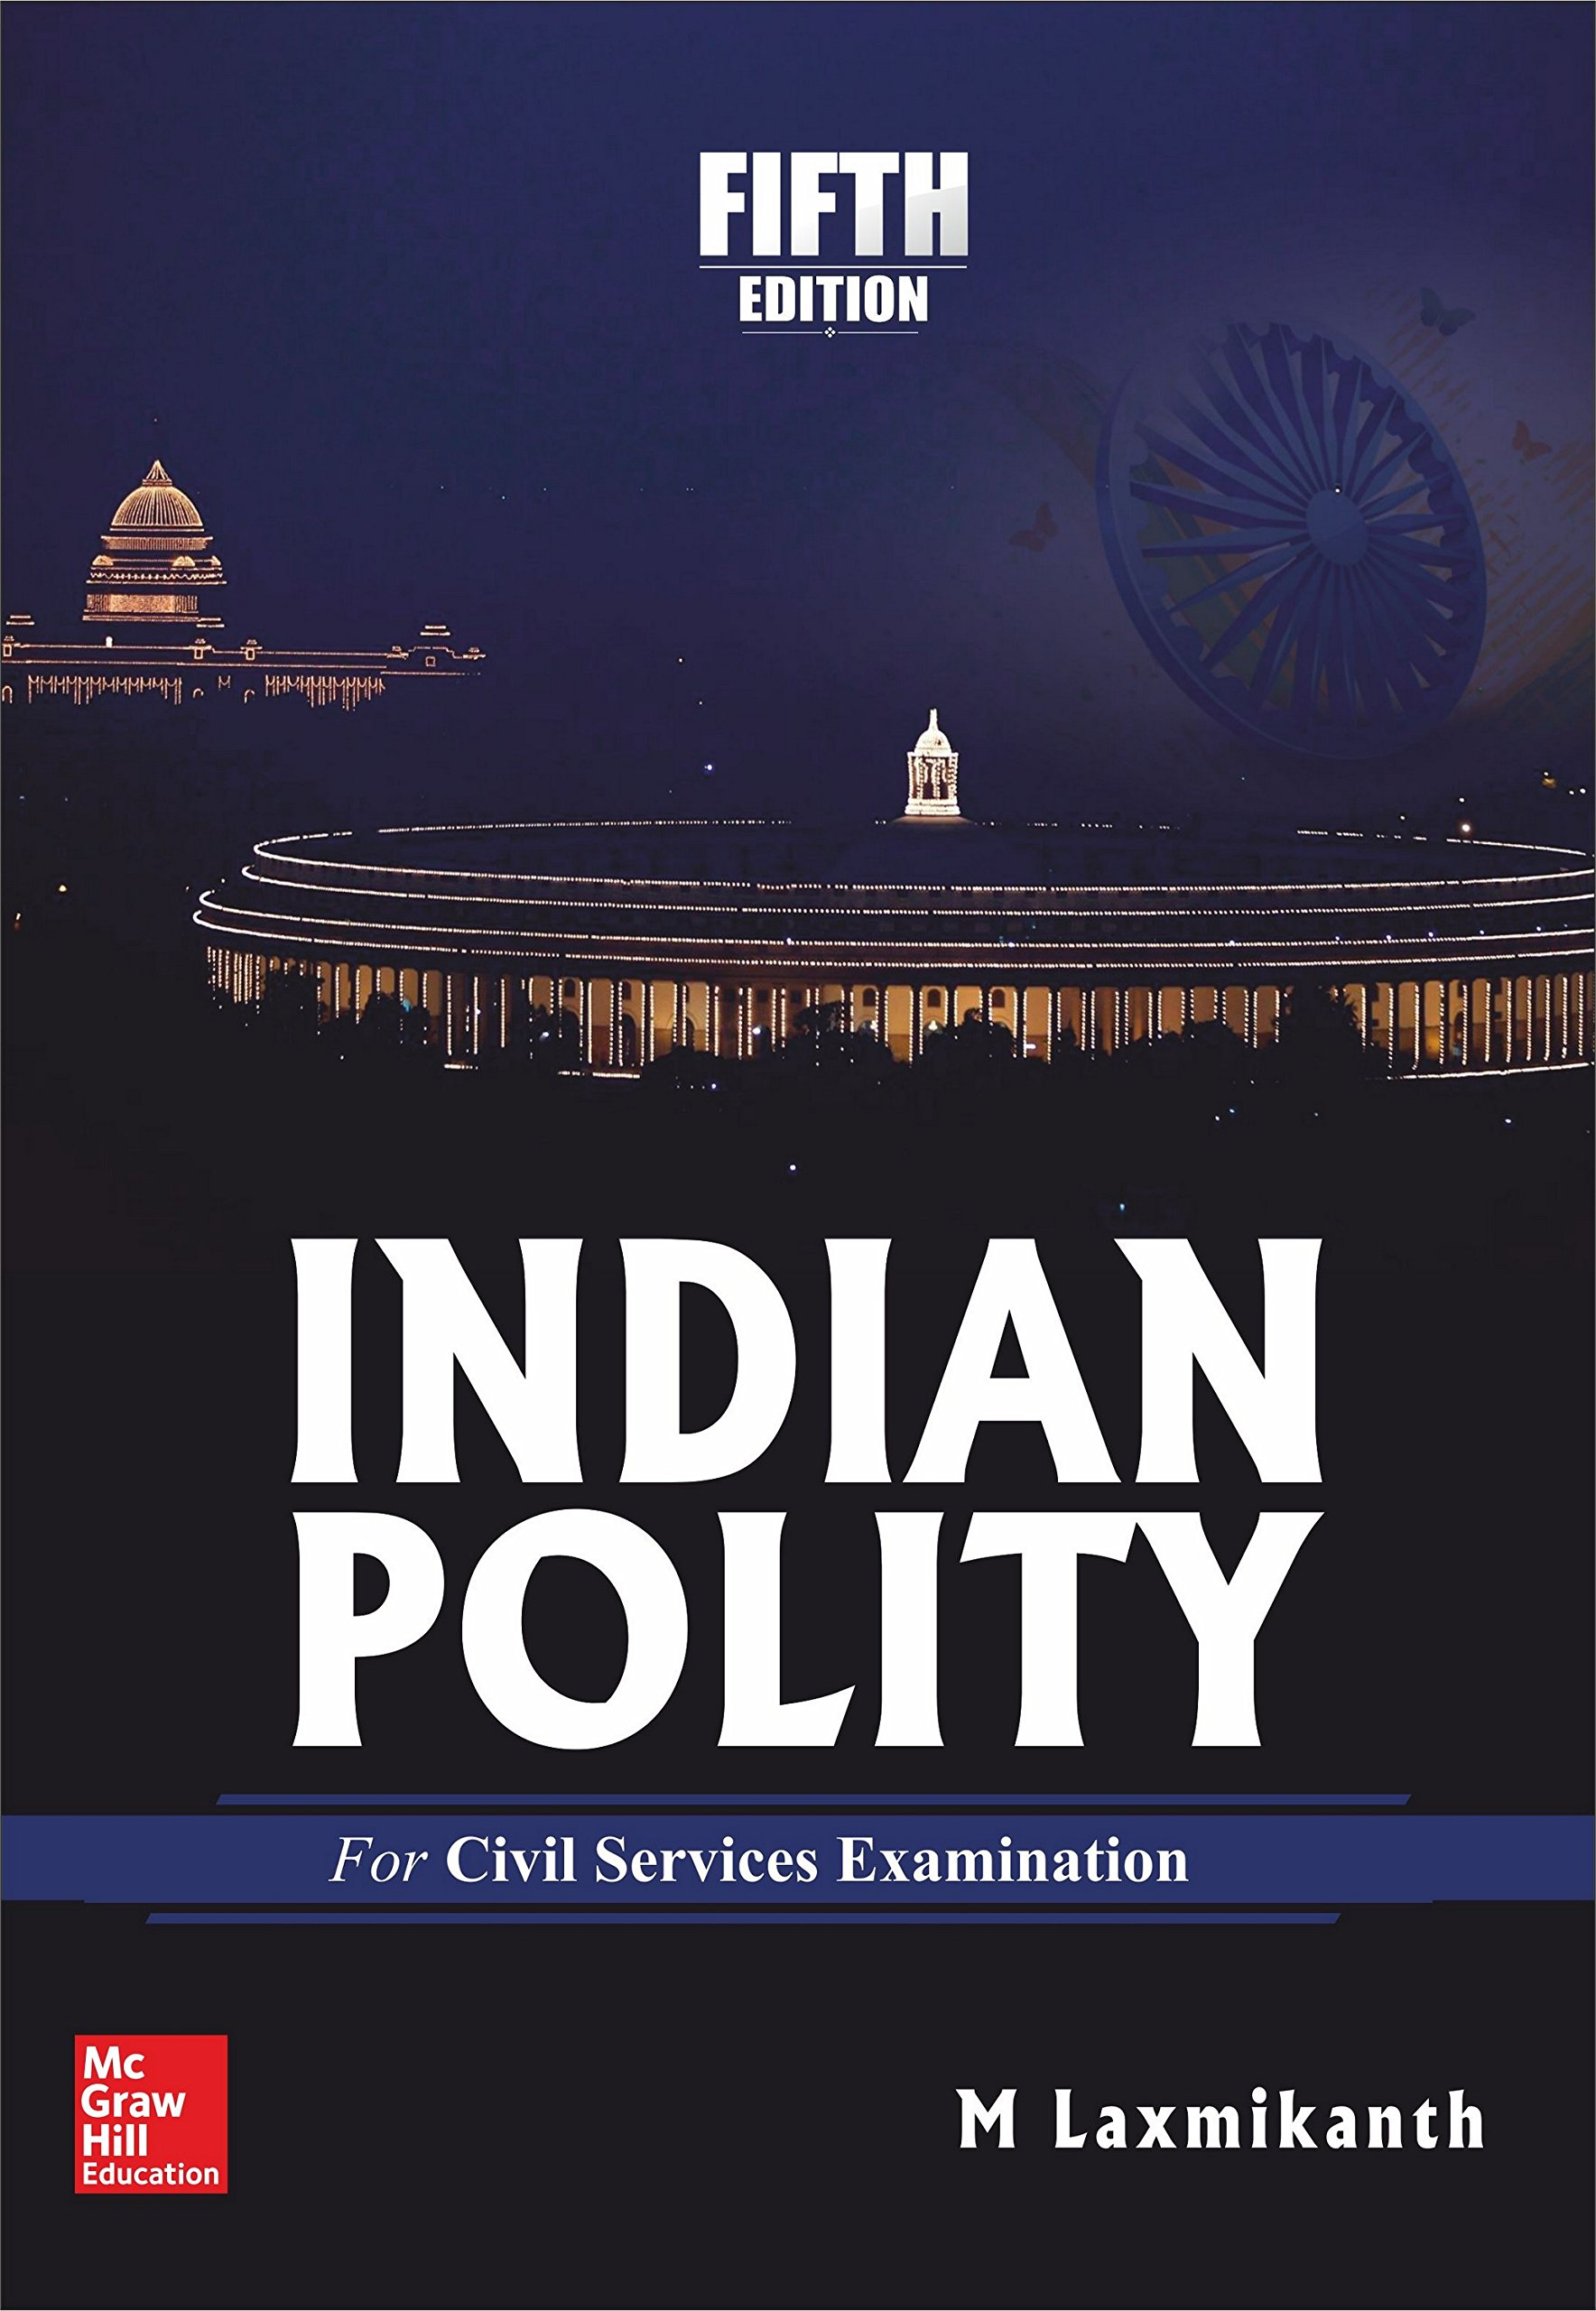 By 5th pdf edition laxmikant indian polity